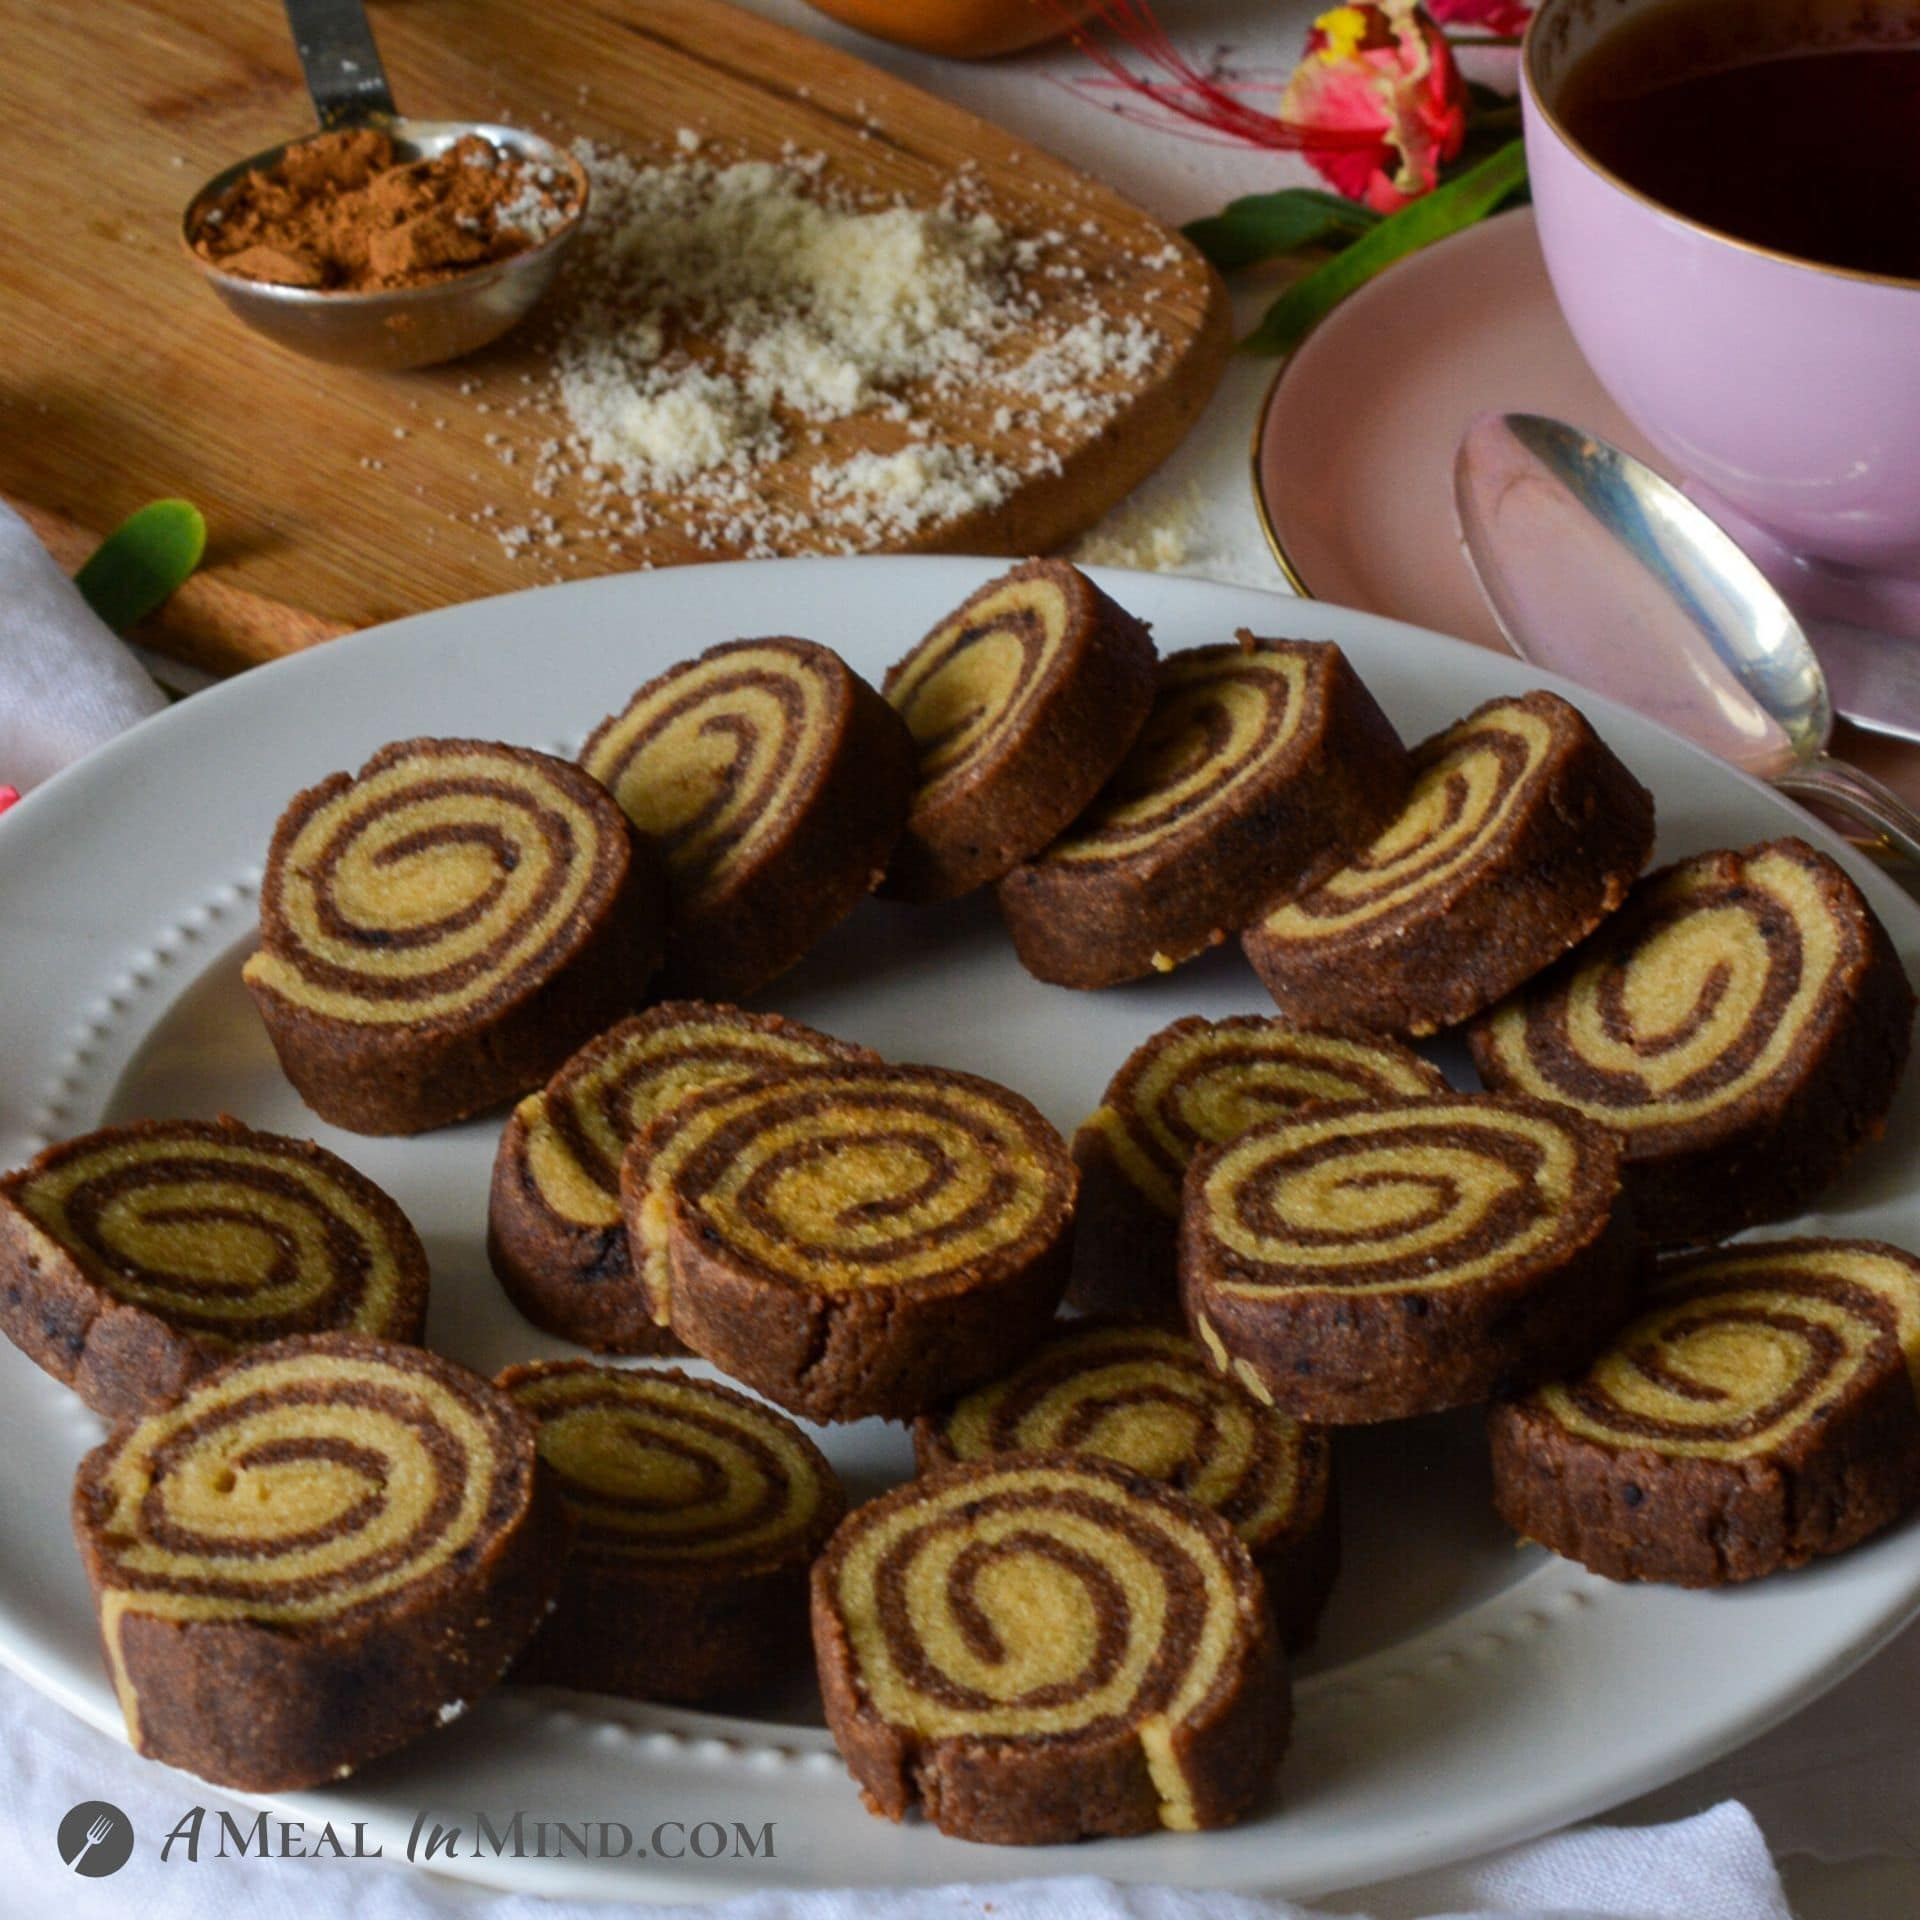 Almond Flour Carob Pinwheel Cookies on white plate with flowers